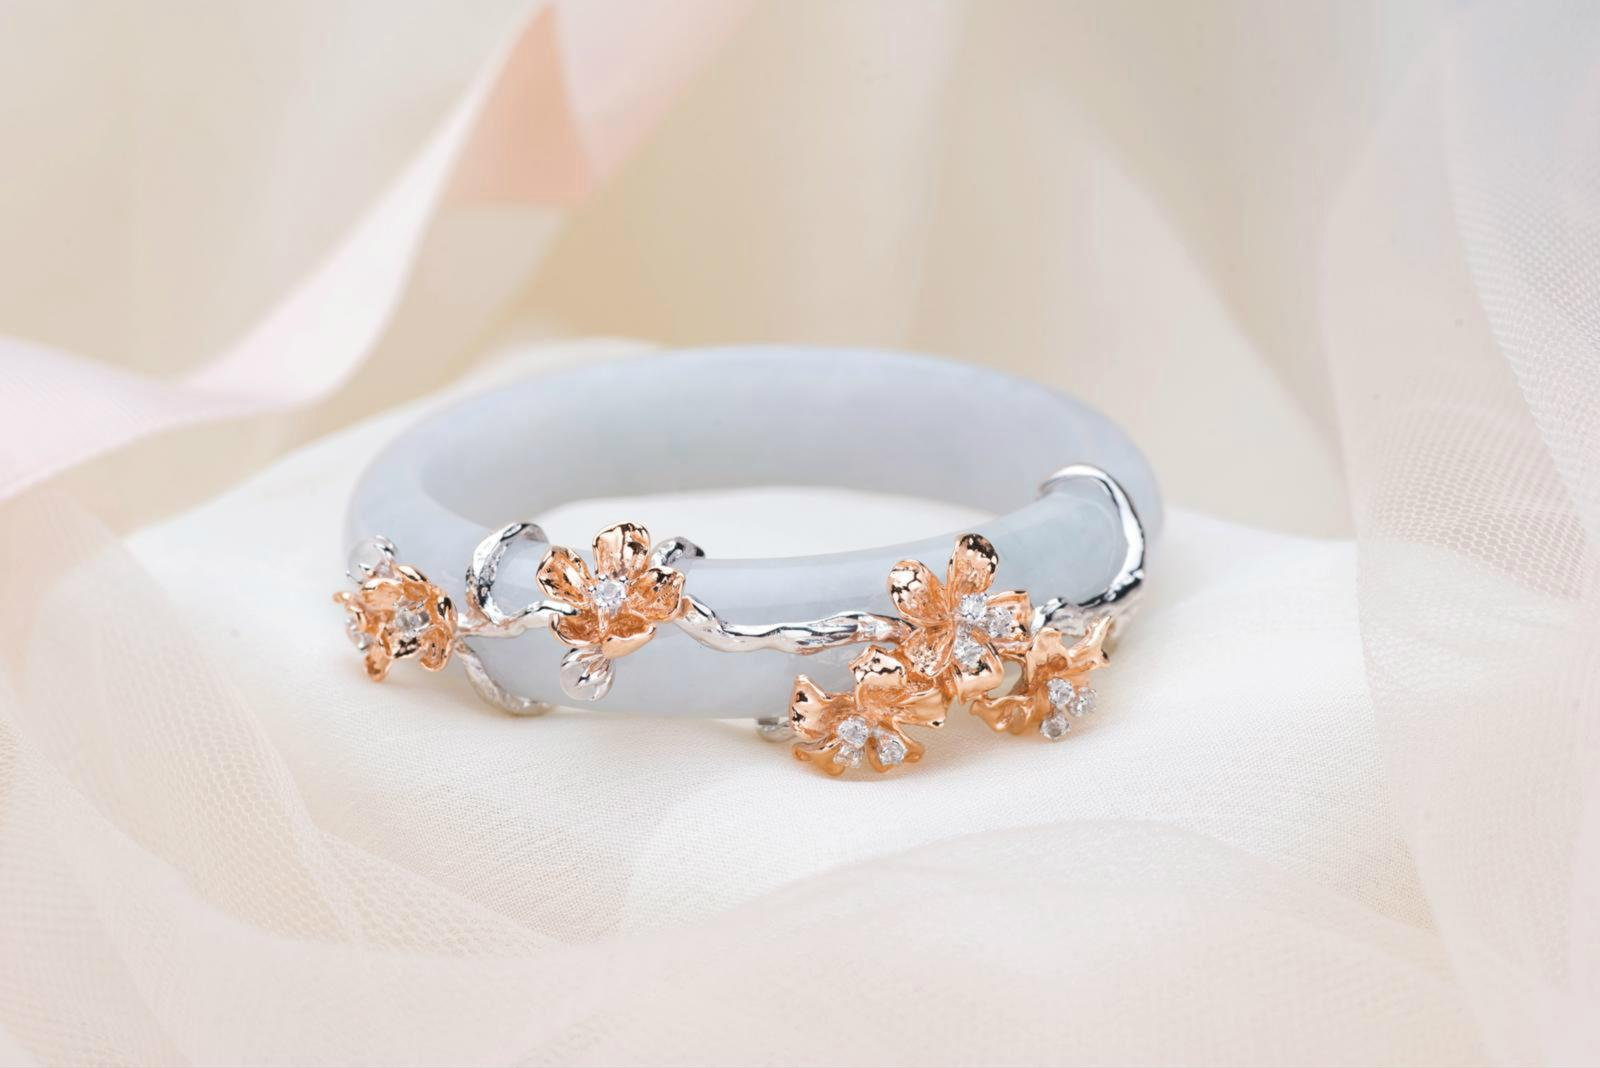 Choo-Yilin-Cherry-Blossom-Bangle - paragon